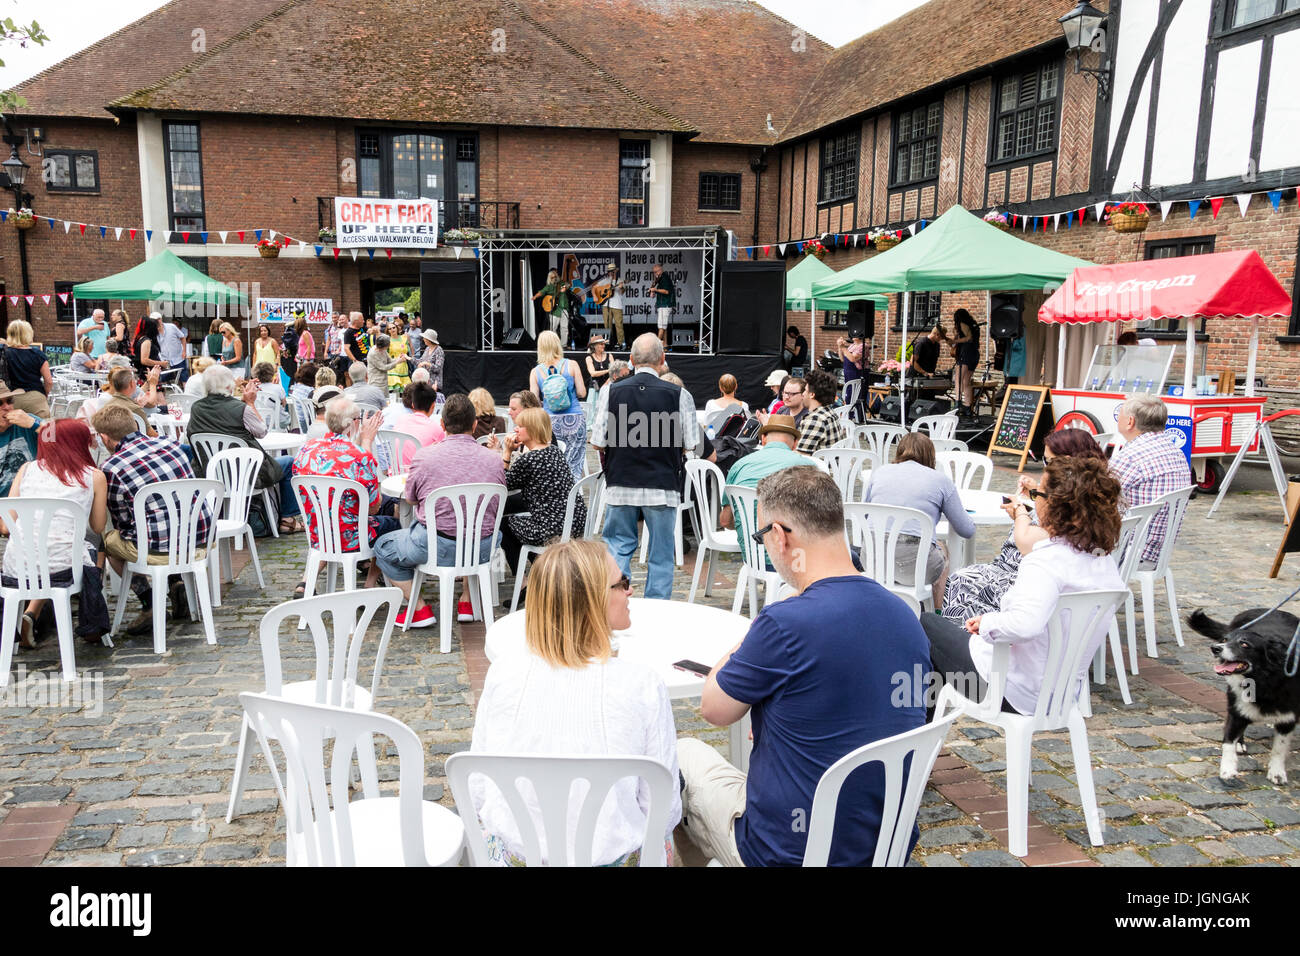 Folk and Ale Festival event at Sandwich in Kent  People